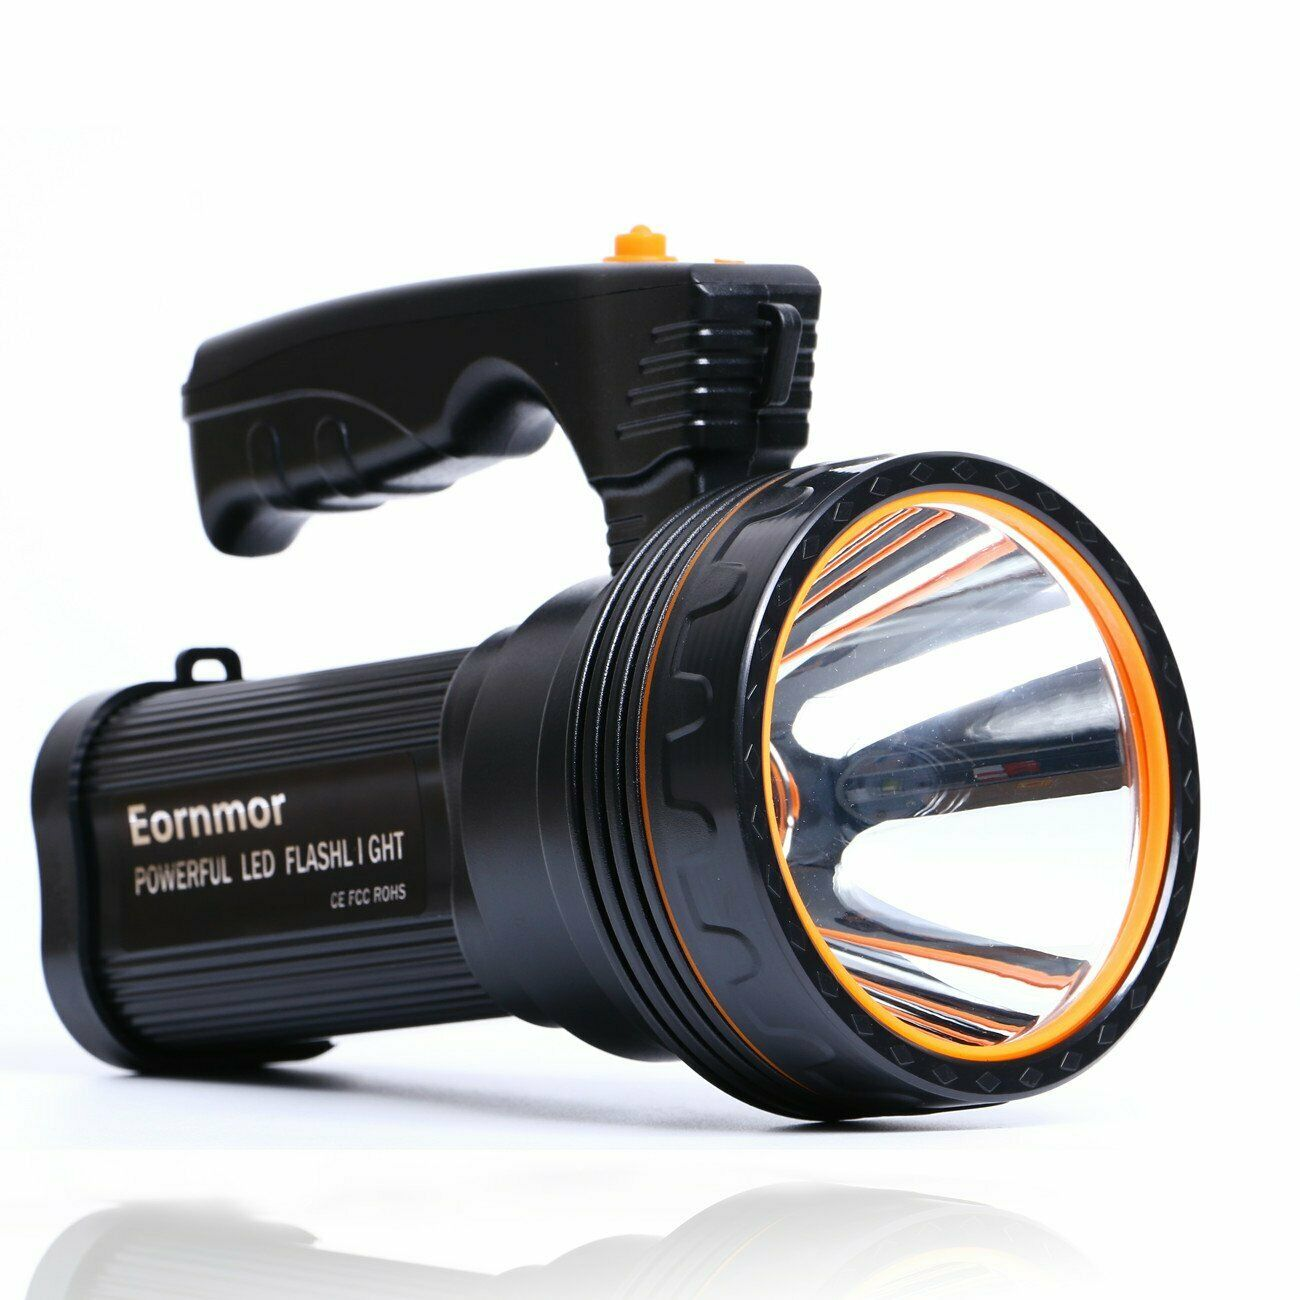 Eornmor Outdoor Handheld Portable Flashlight 6000 Lumens USB Rechargeable